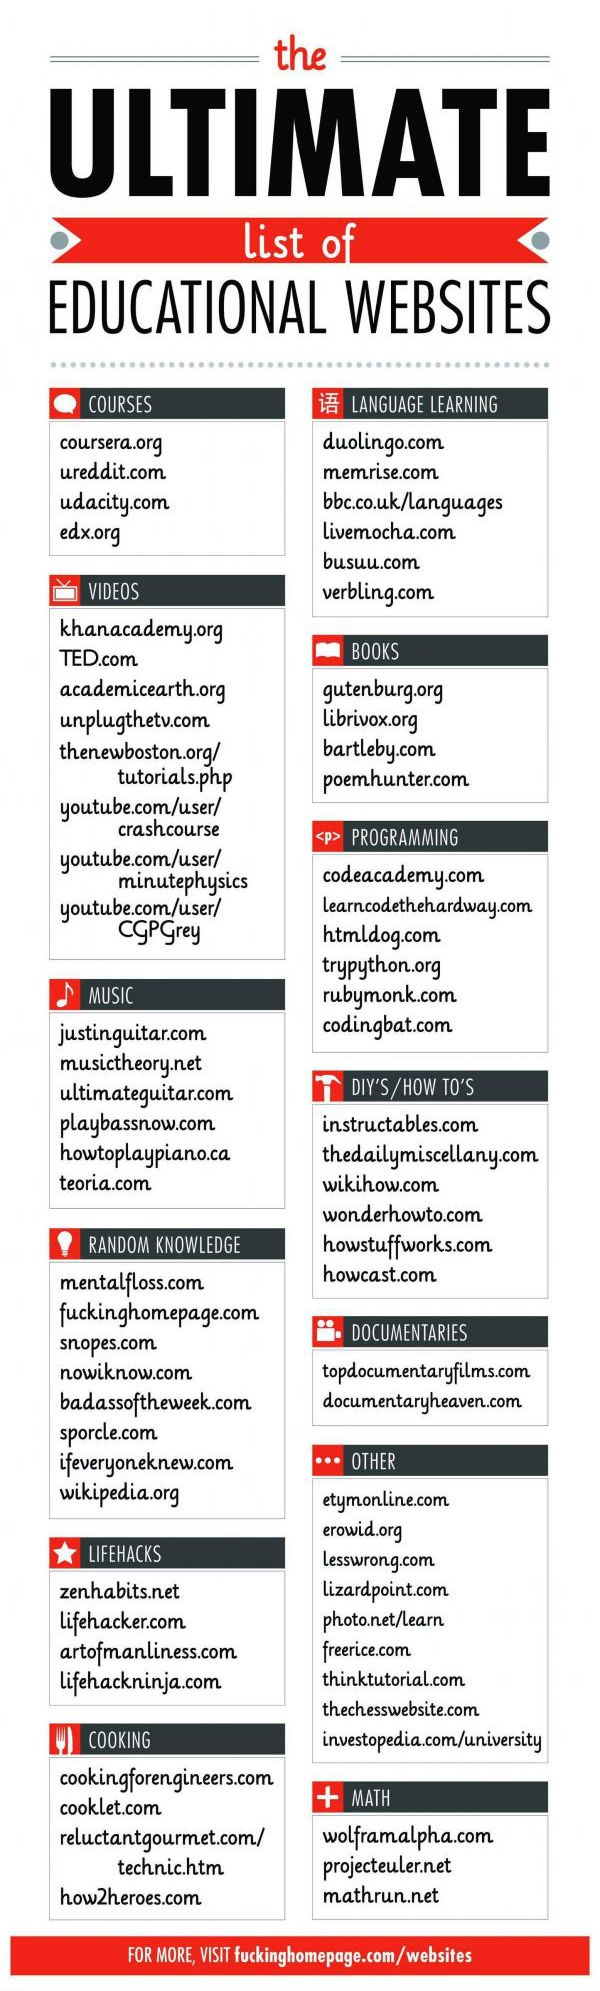 Like the title suggest, this is the Ultimate list of educational websites!